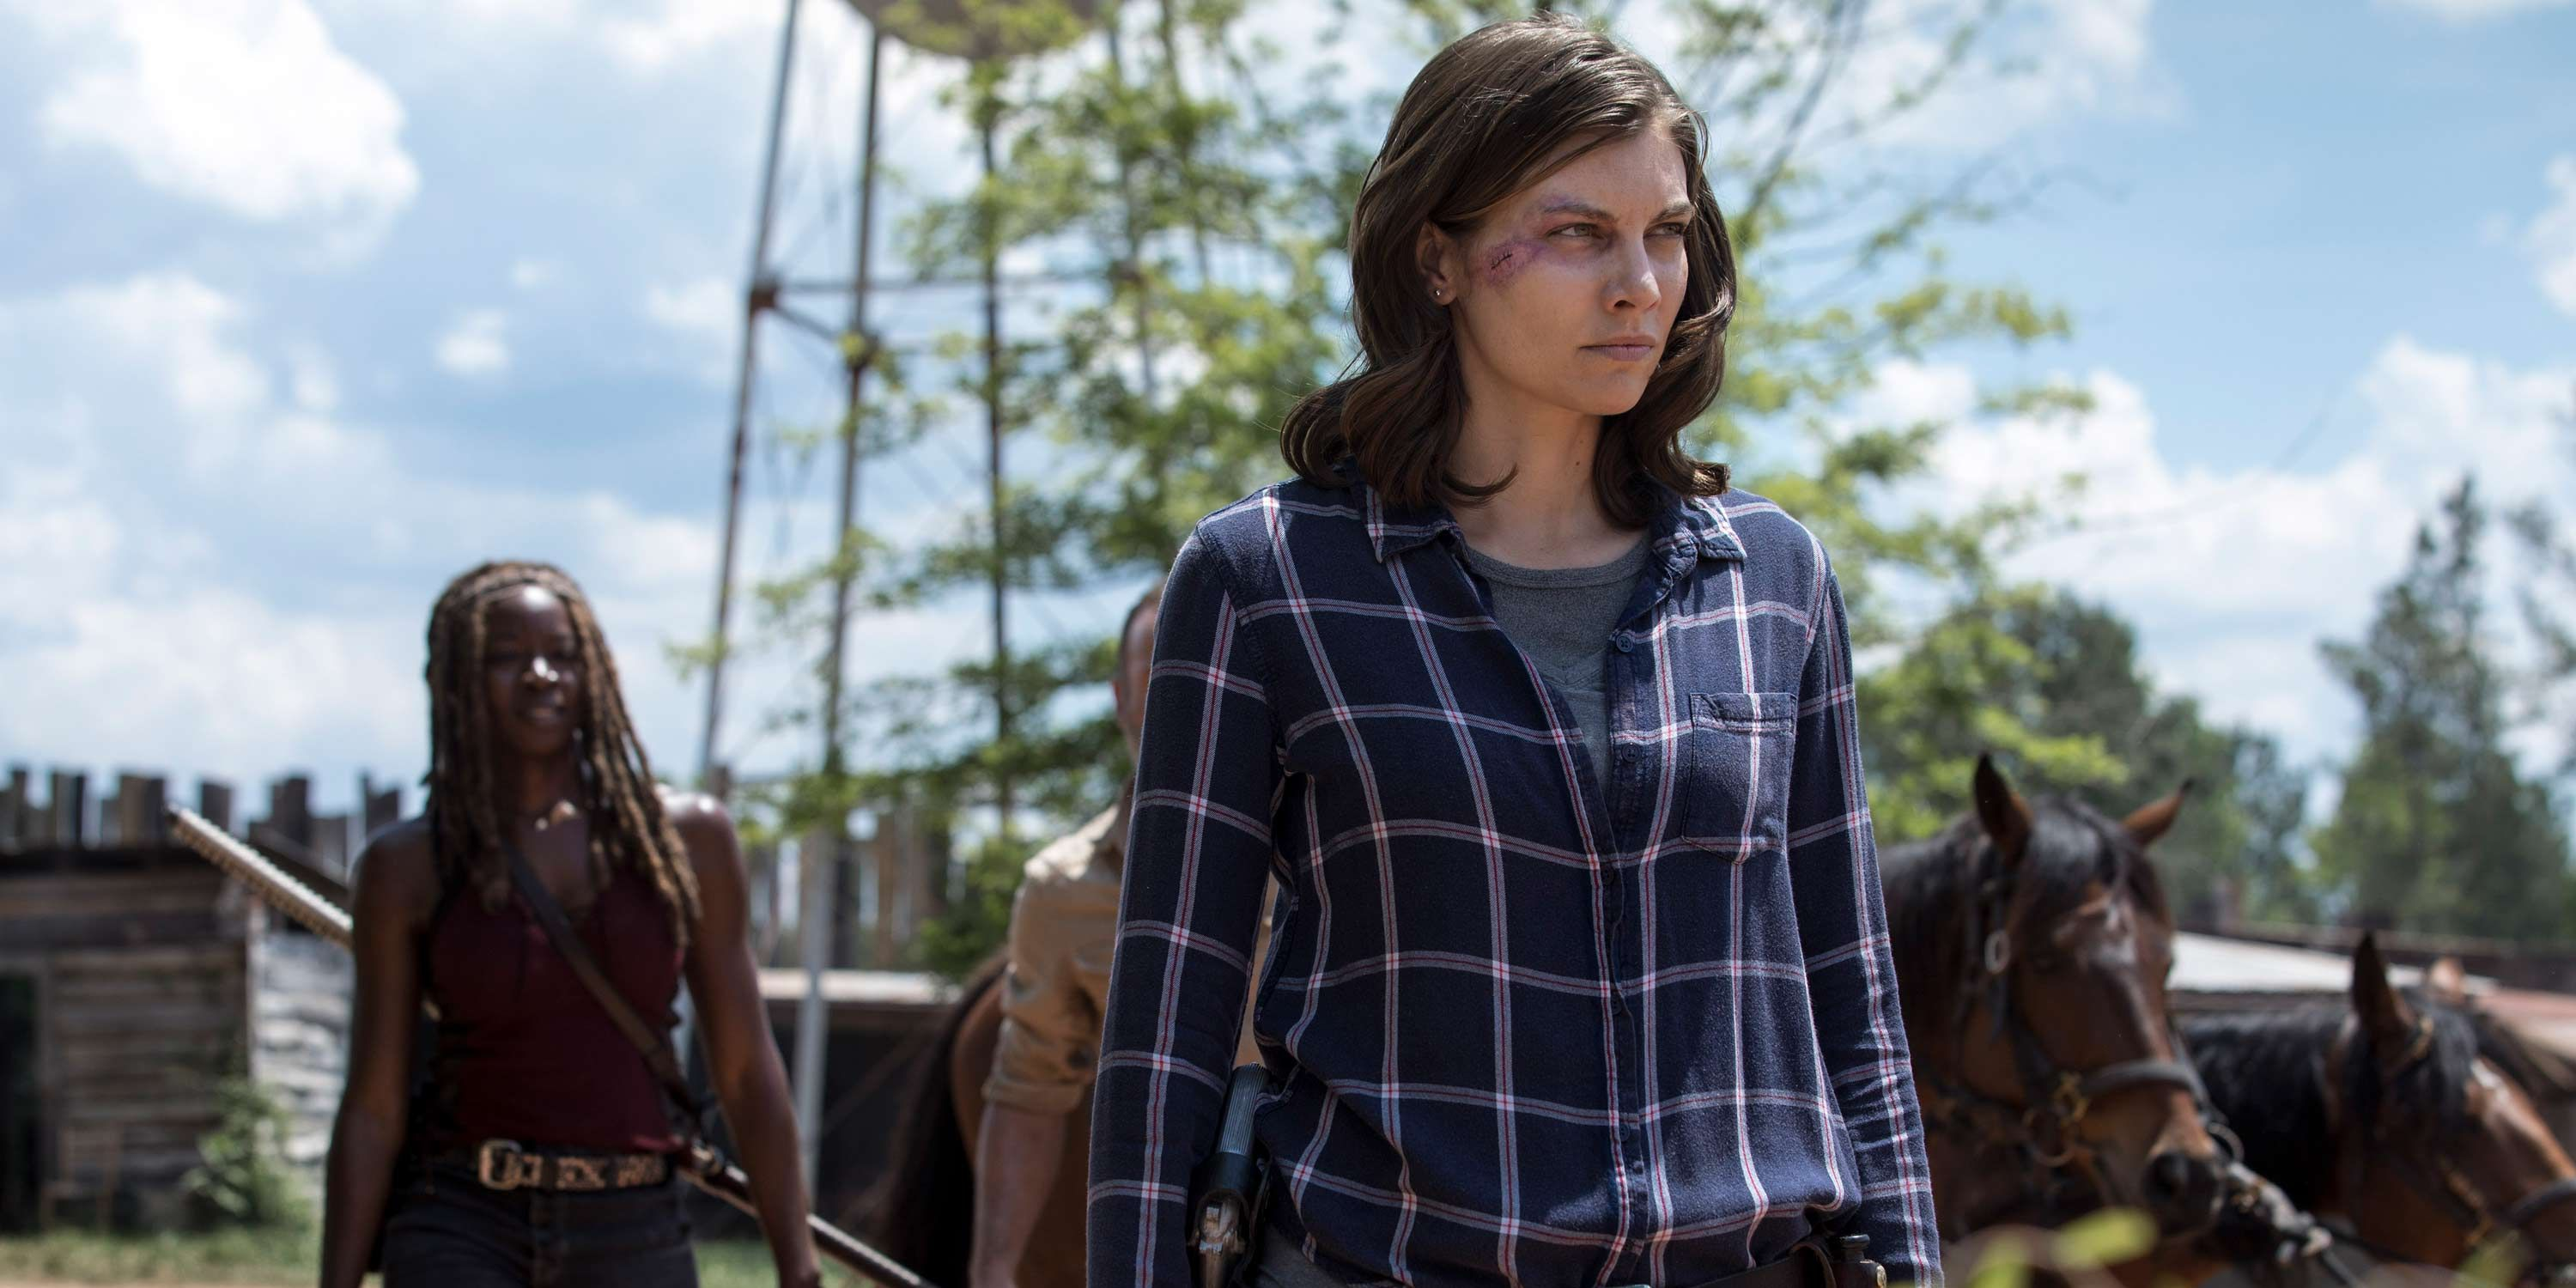 Lauren Cohan, Maggie Rhee, Danai Gurira, Michonne, The Walking Dead, Season 9, Episode 1